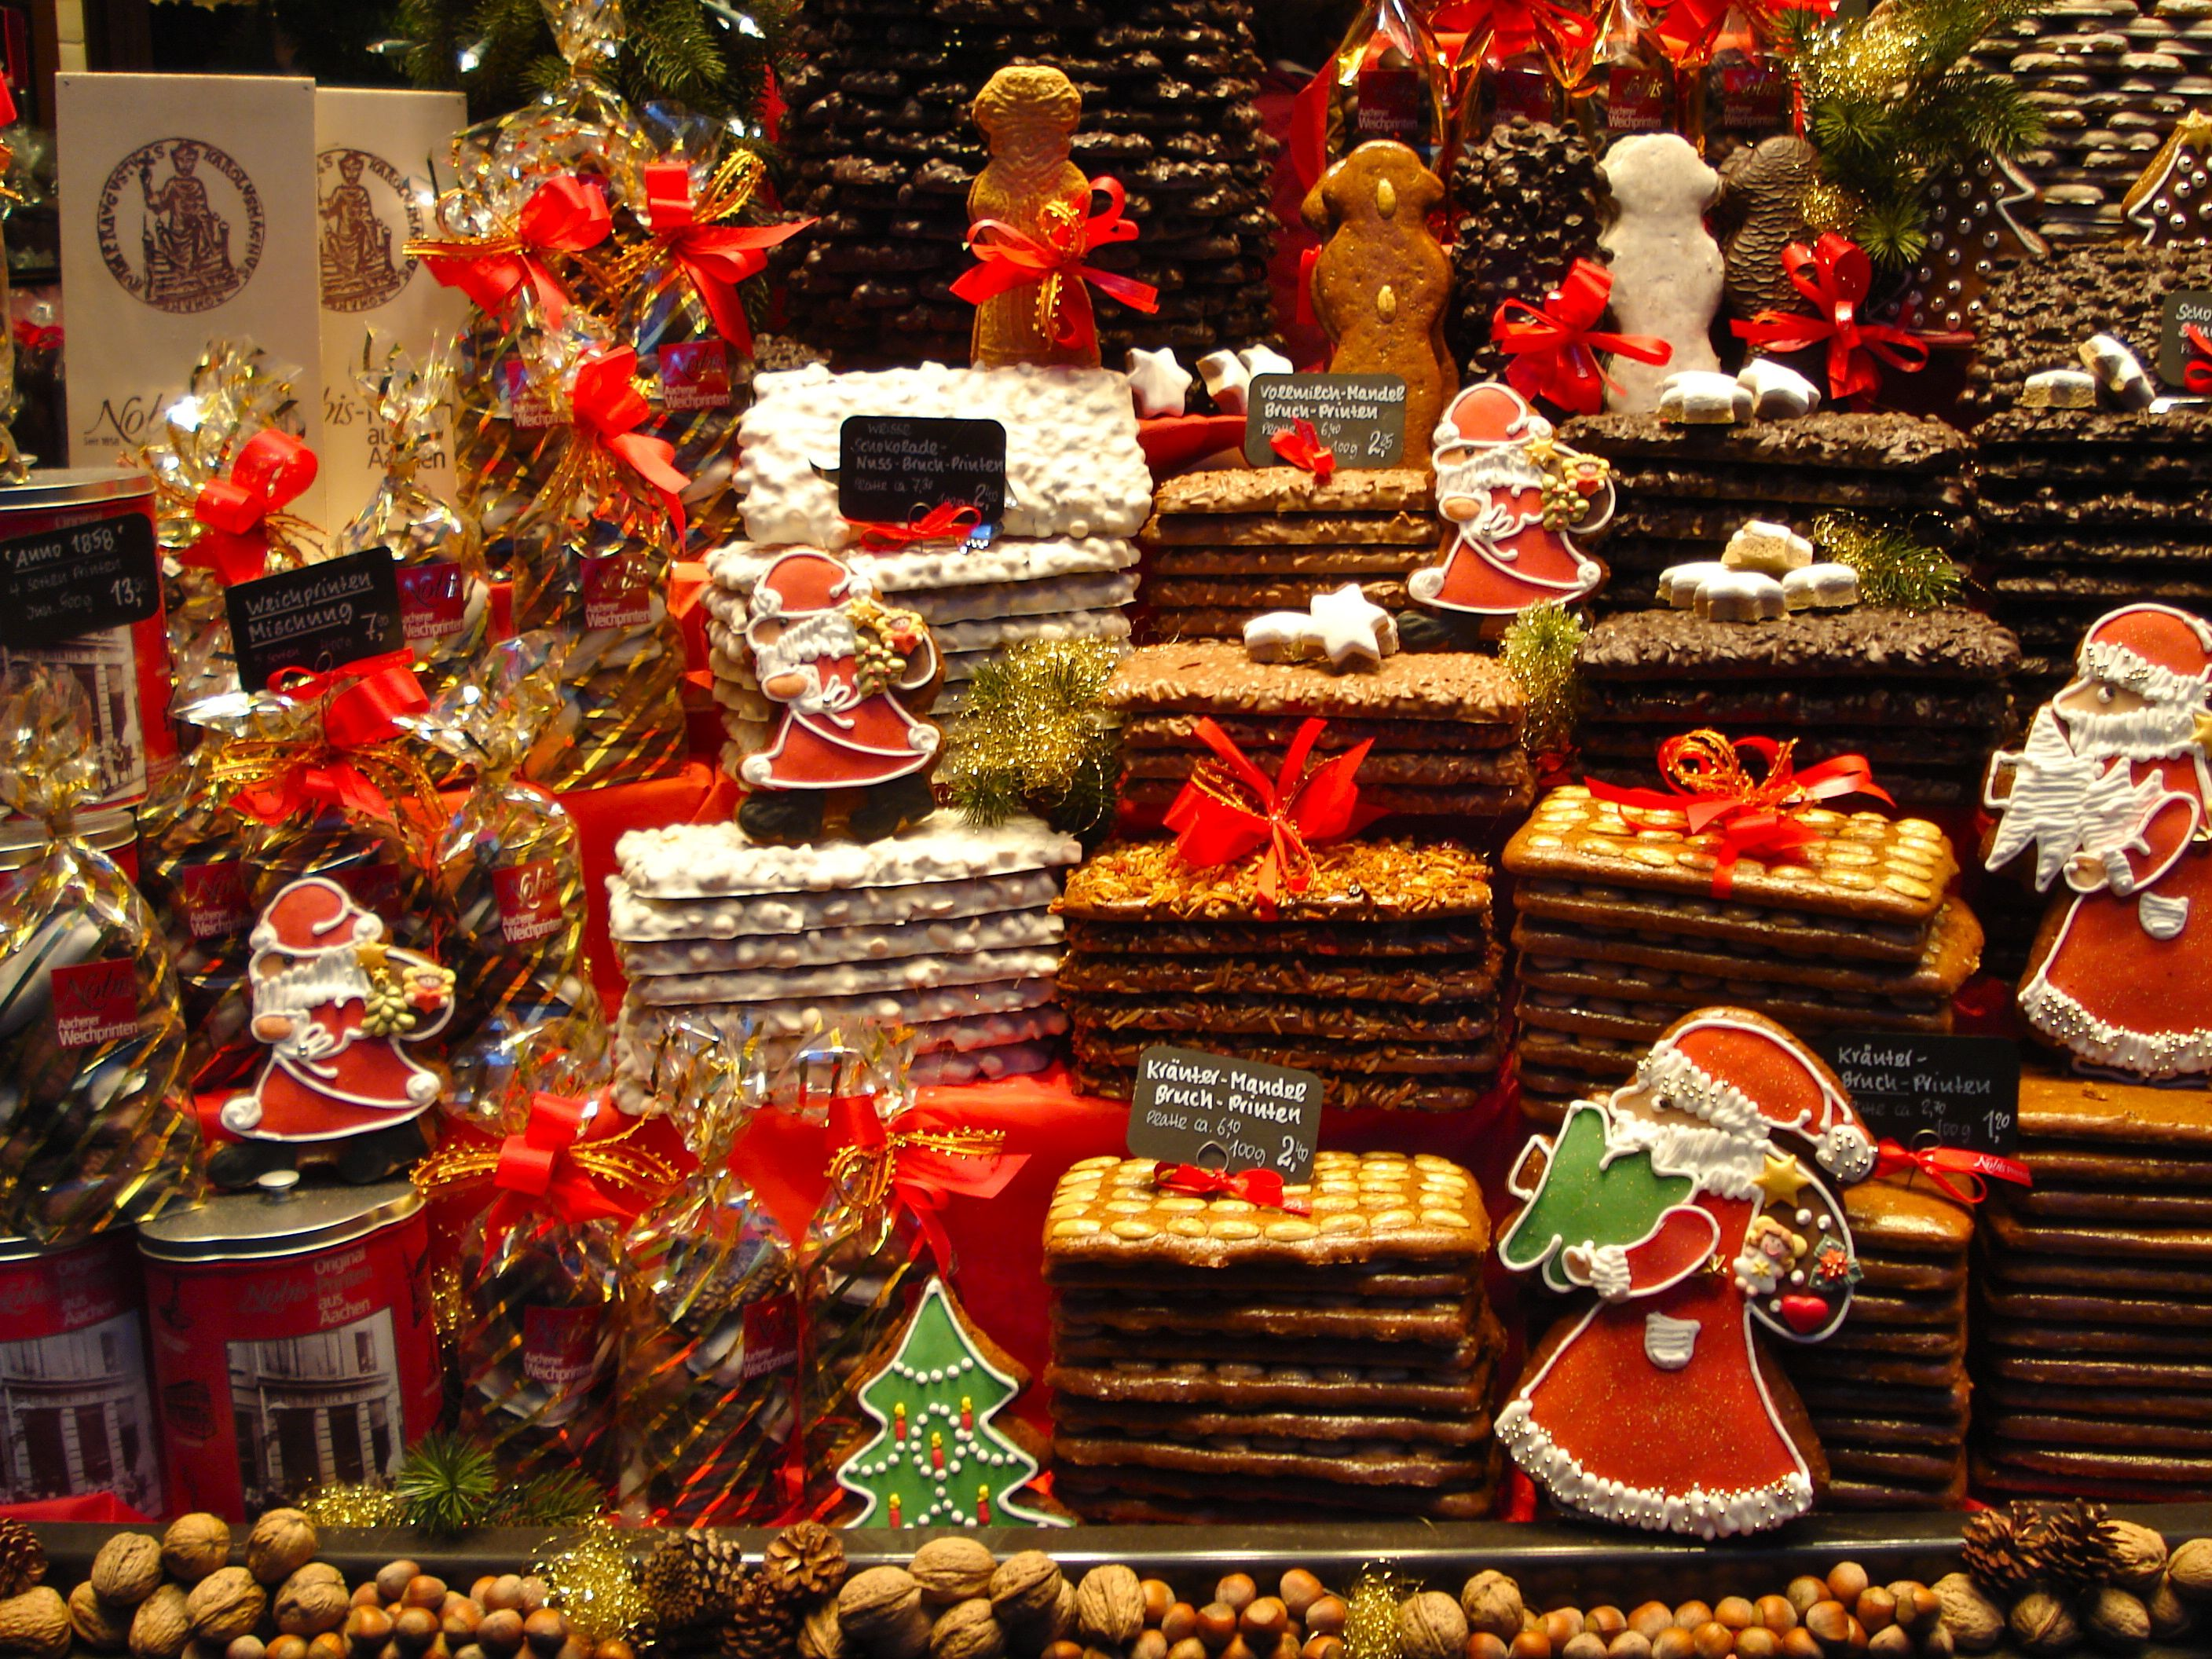 Traditional german christmas decorations - Bakeries Germany Christmas Market Bakery Aachen Germany Christmas